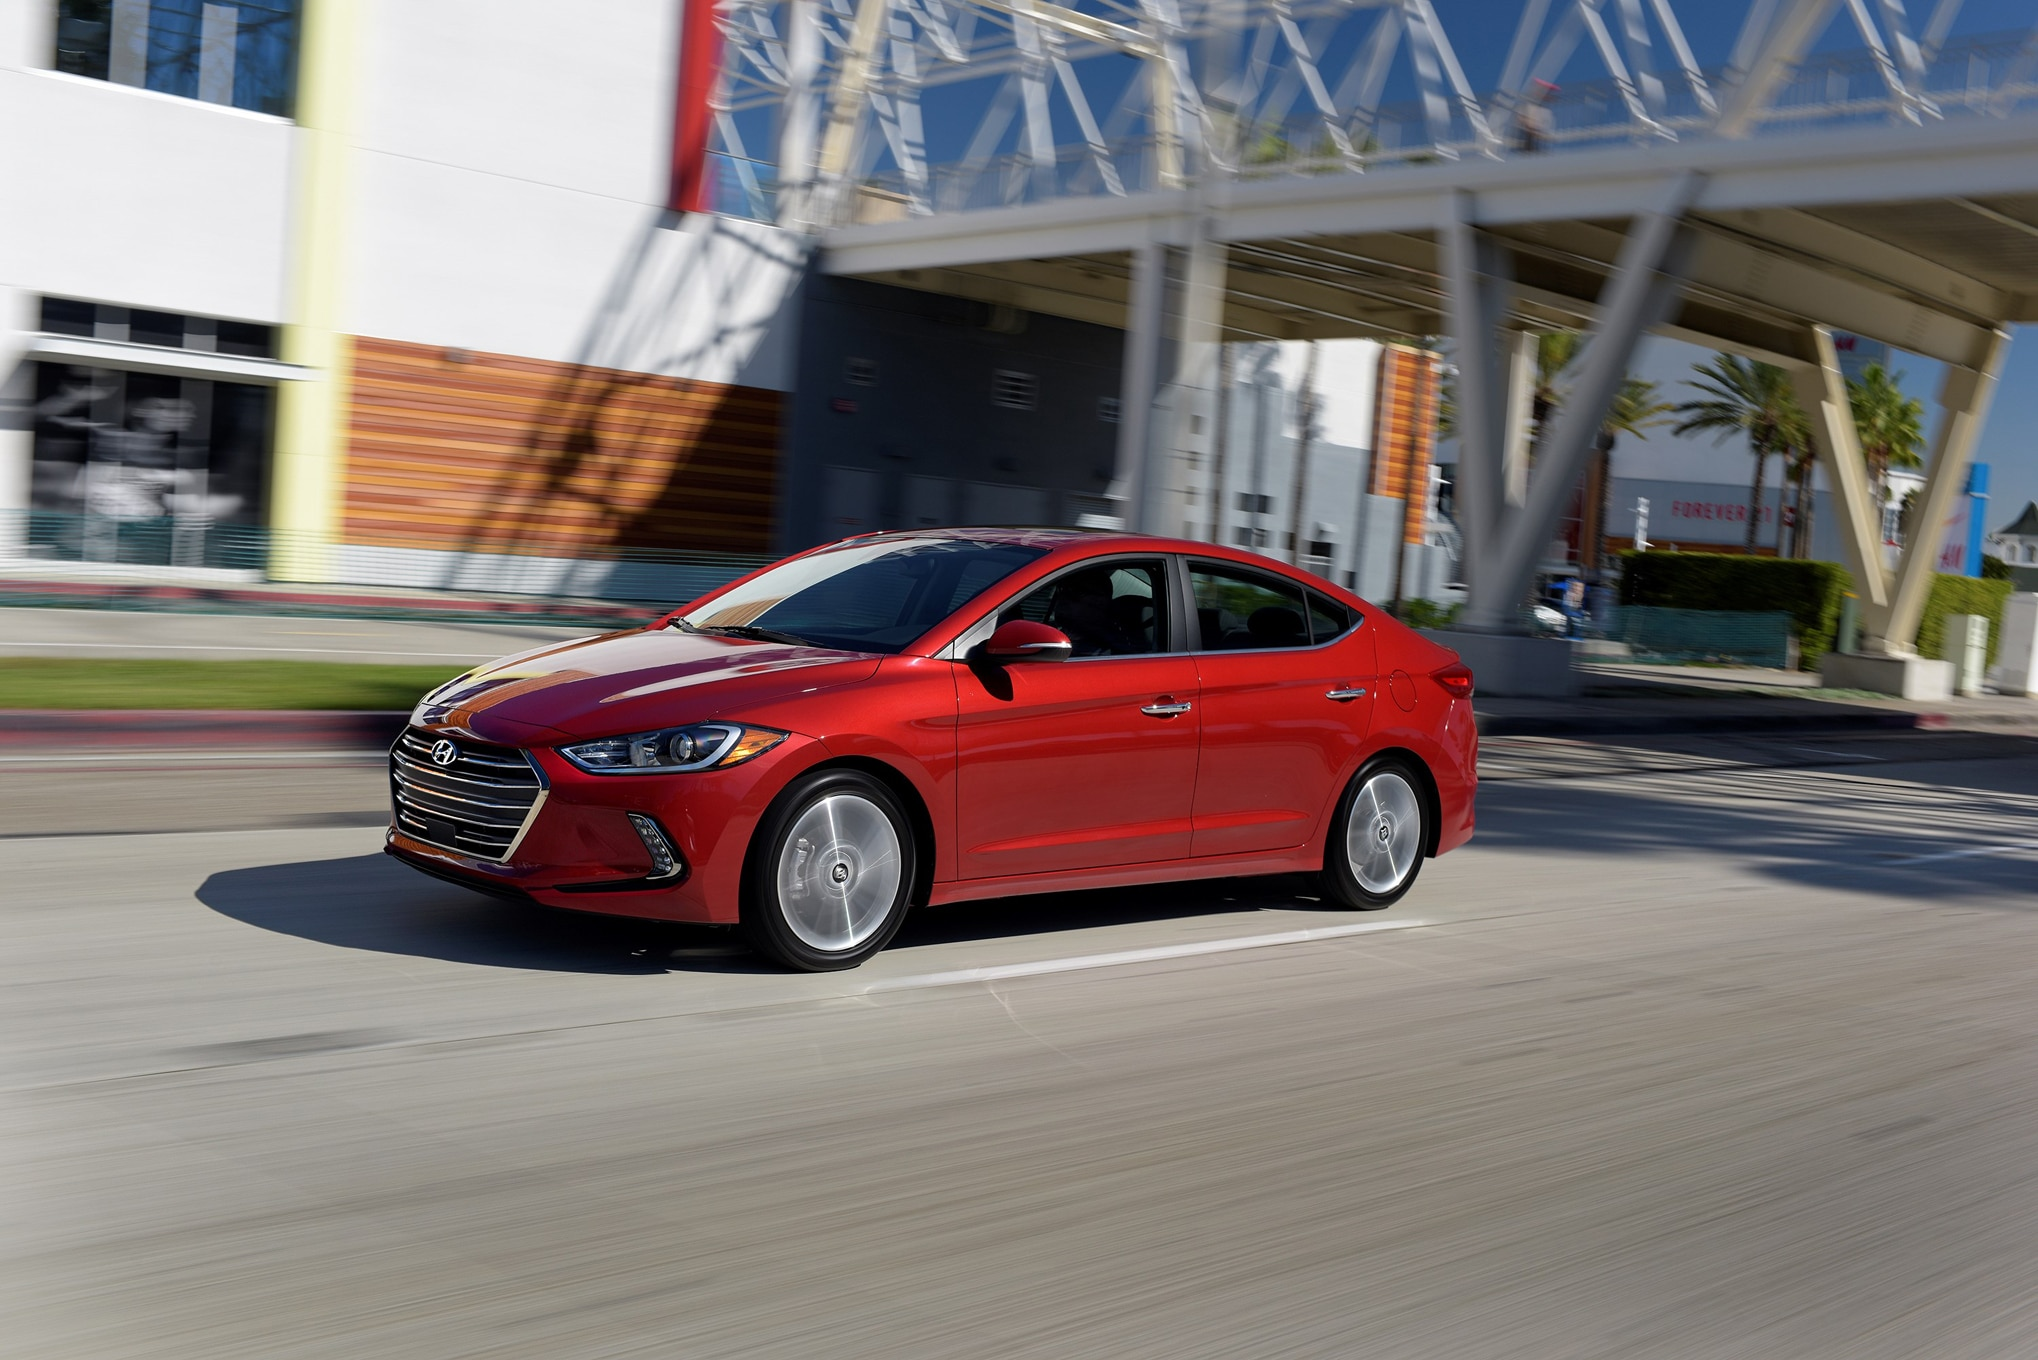 2017 Hyundai Elantra Front Three Quarter In Motion 03